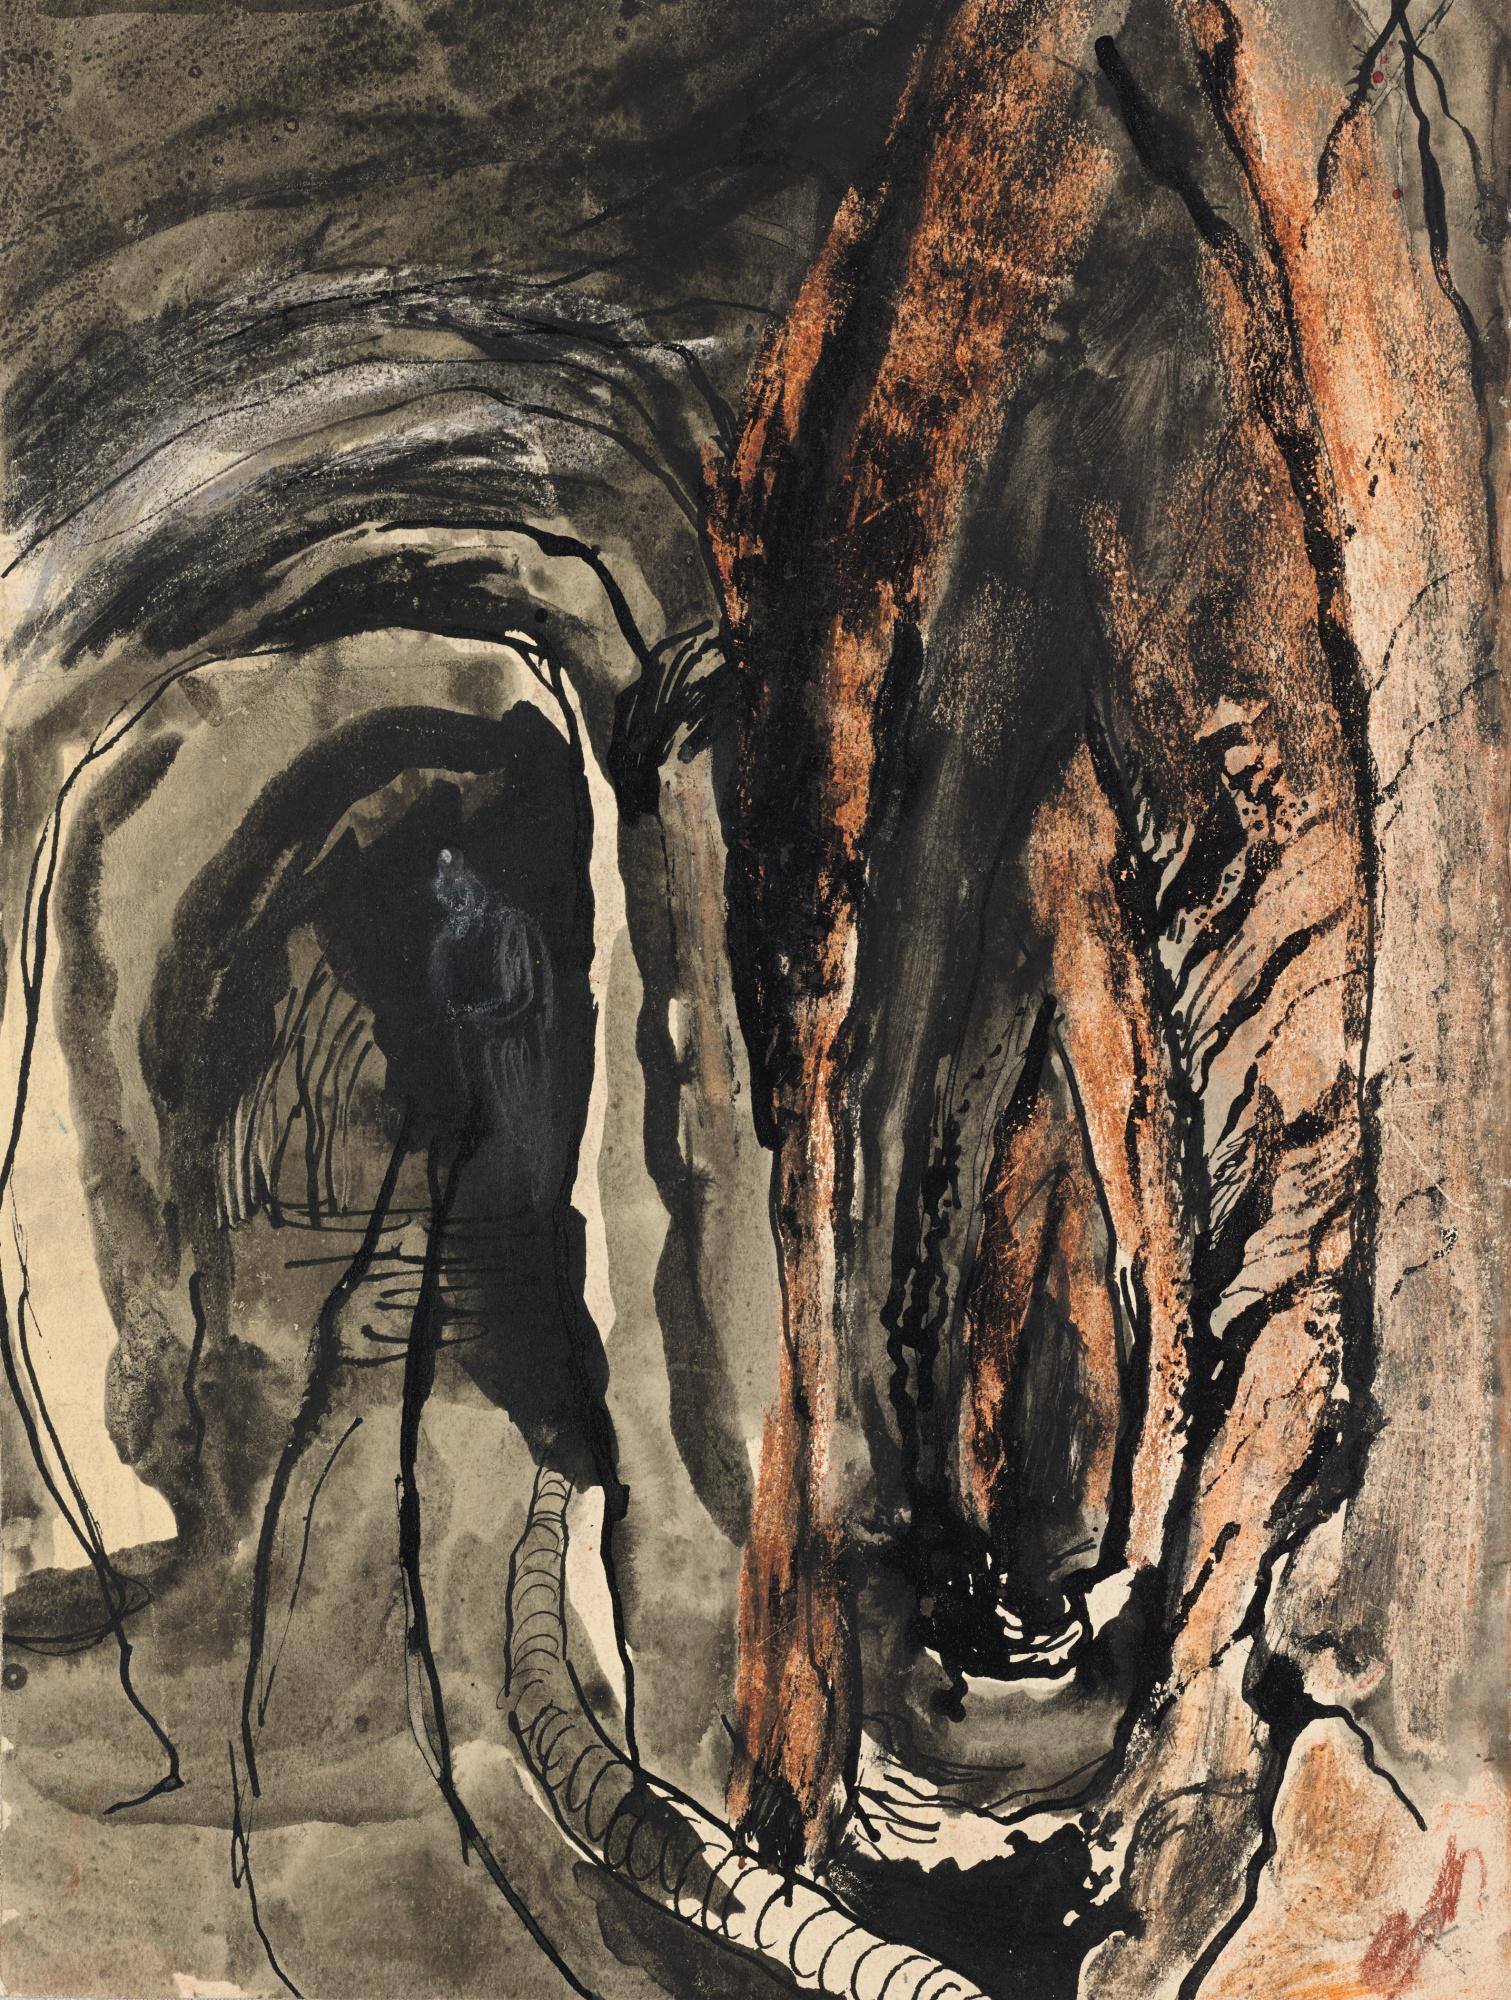 GRAHAM SUTHERLAND | GEEVOR TIN MINE